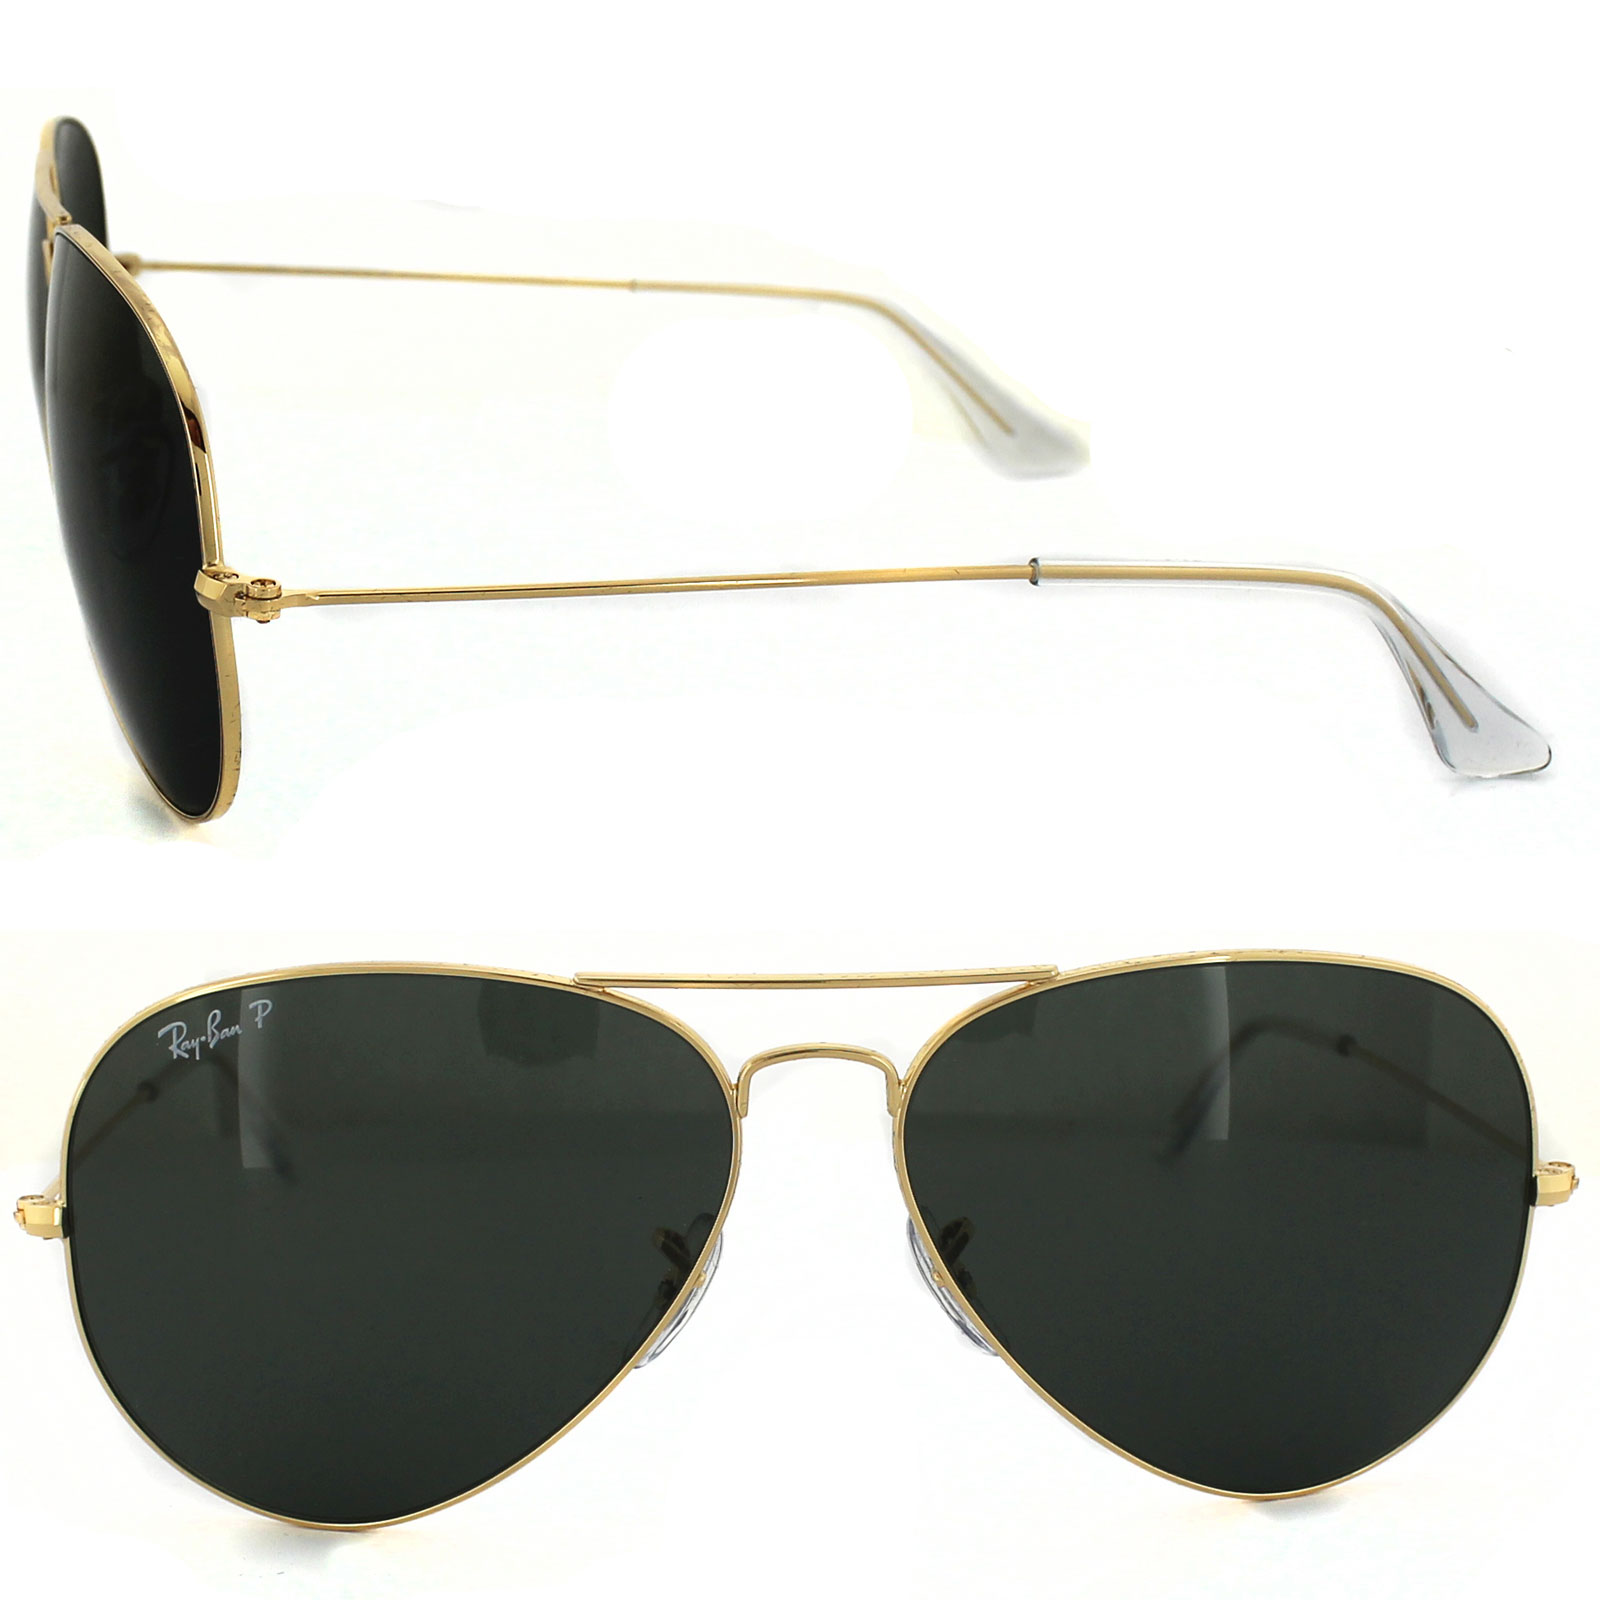 dc155d014b Ban Eye « Aviator Cat 3025 Heritage Sunglasses Malta Ray Polarized  ptwx77dfFq